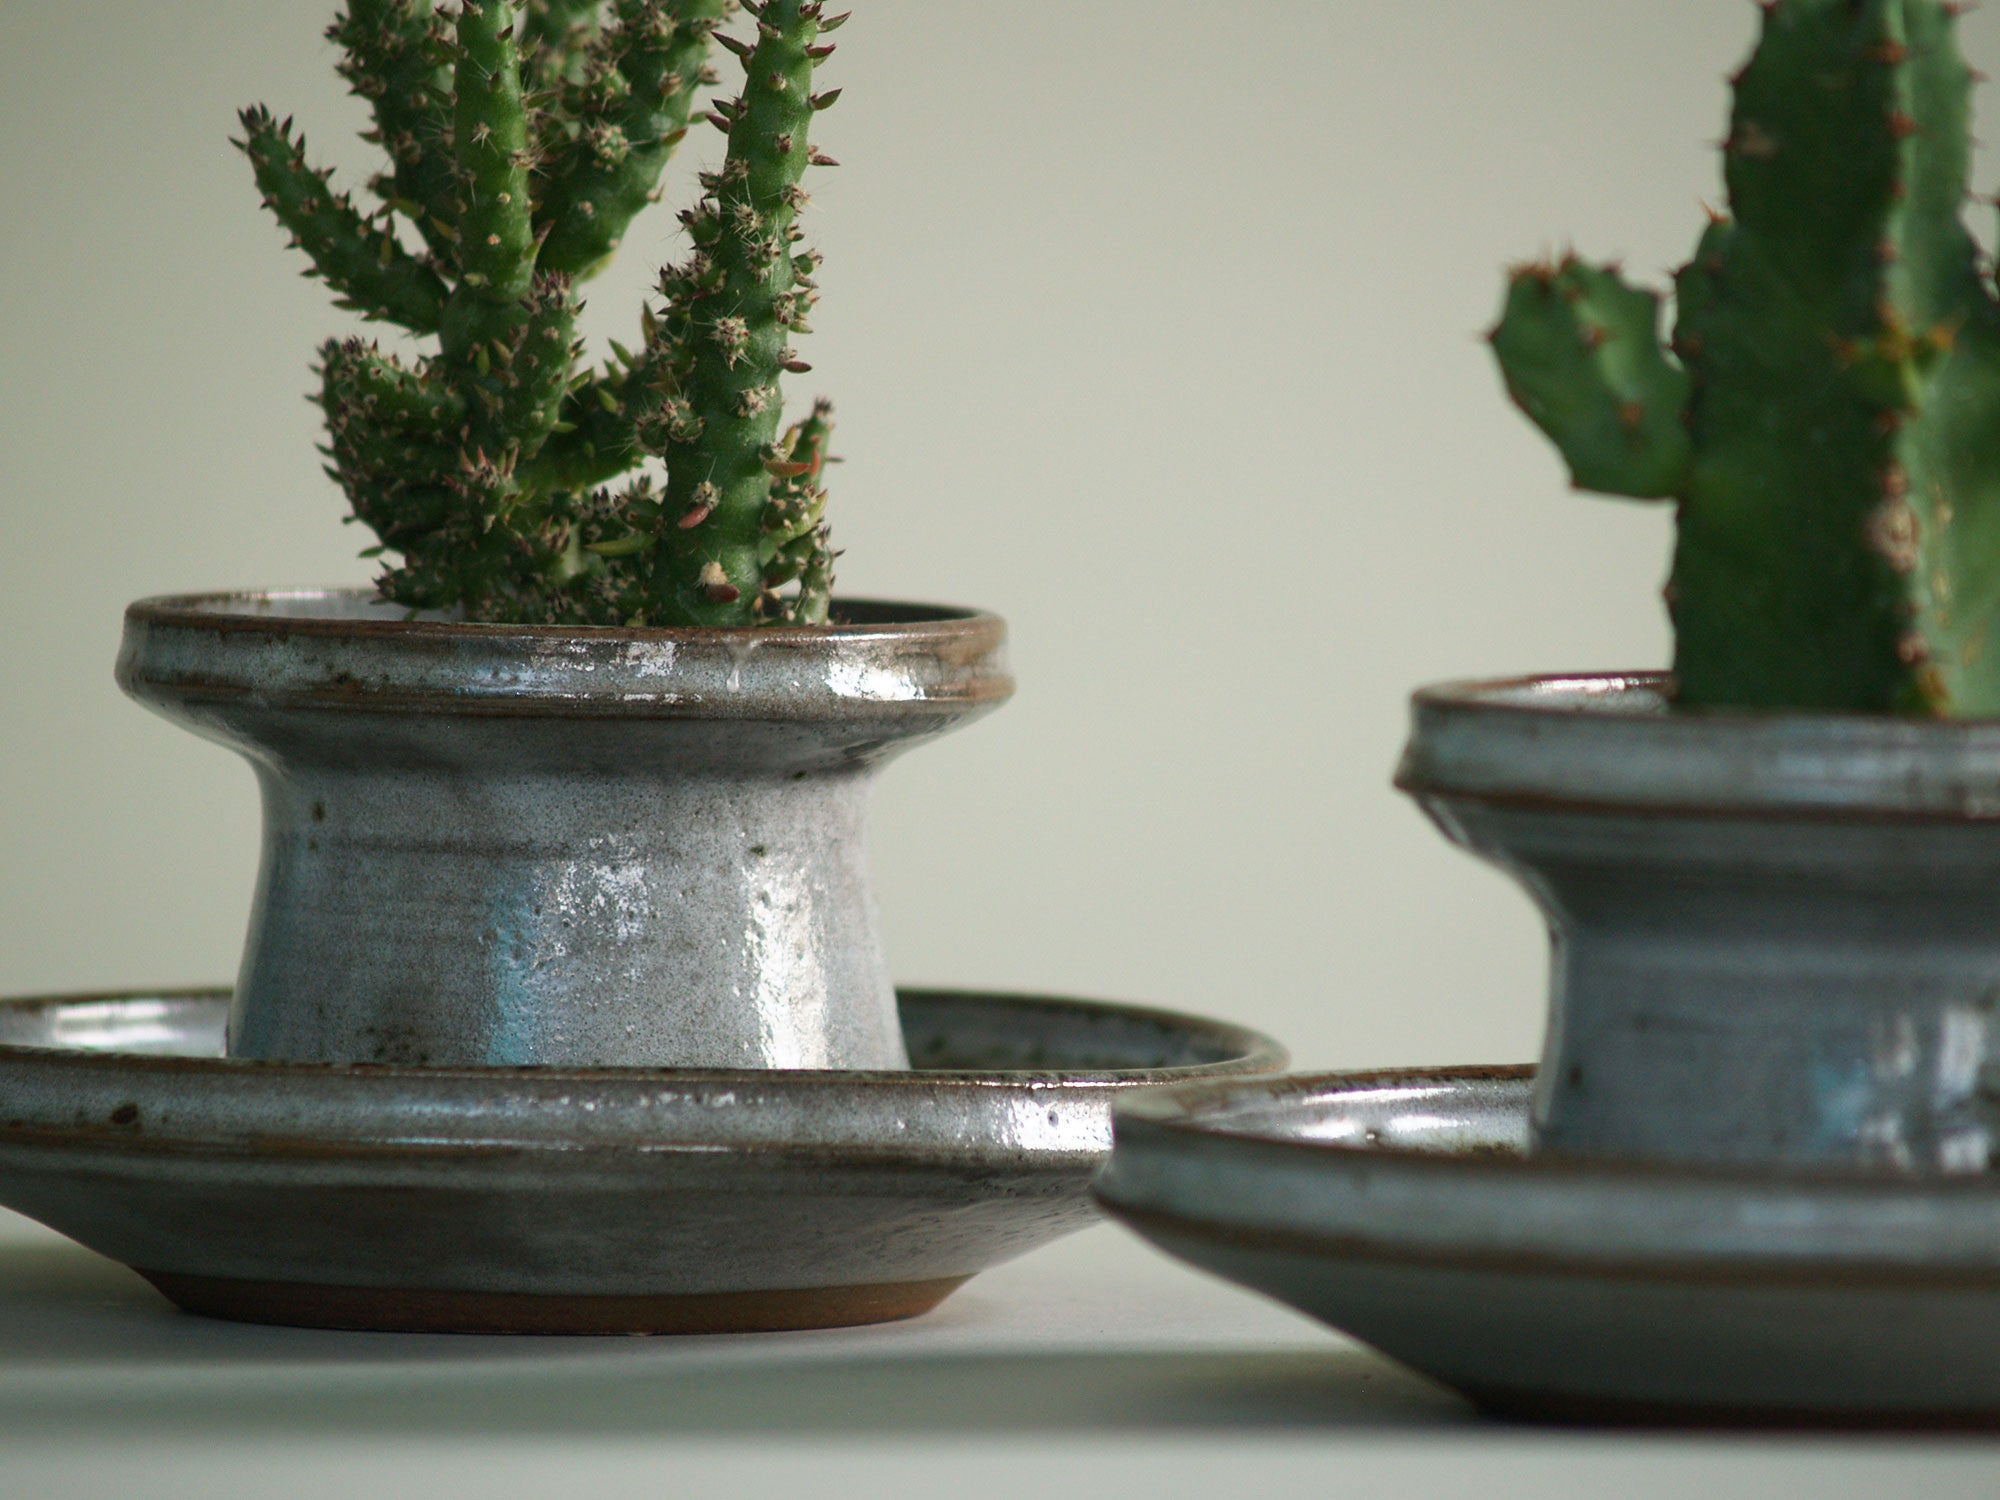 Paire de pots de Chantal & Thierry Robert, France (vers 1963)..Planters set by Chantal & Thierry Robert, France (circa 1963)